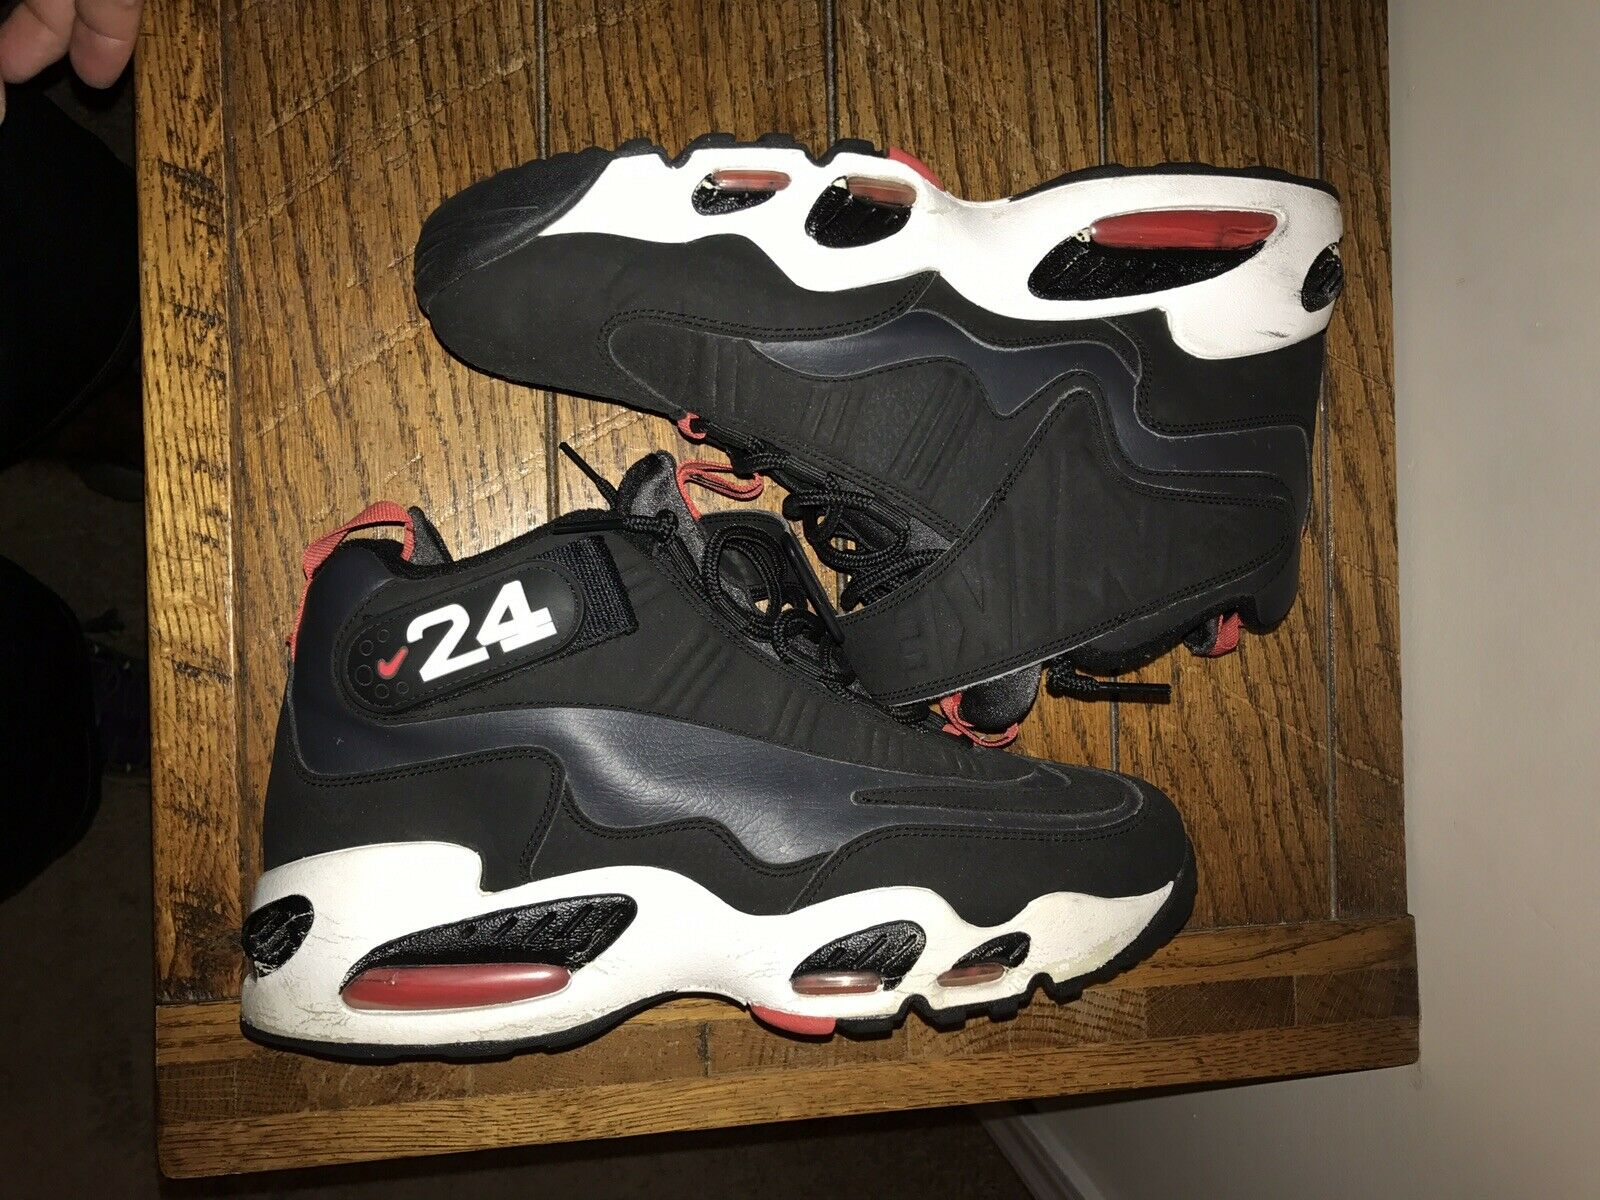 Nike Air Griffey Max 1 Size 10 2011 Athletic shoes